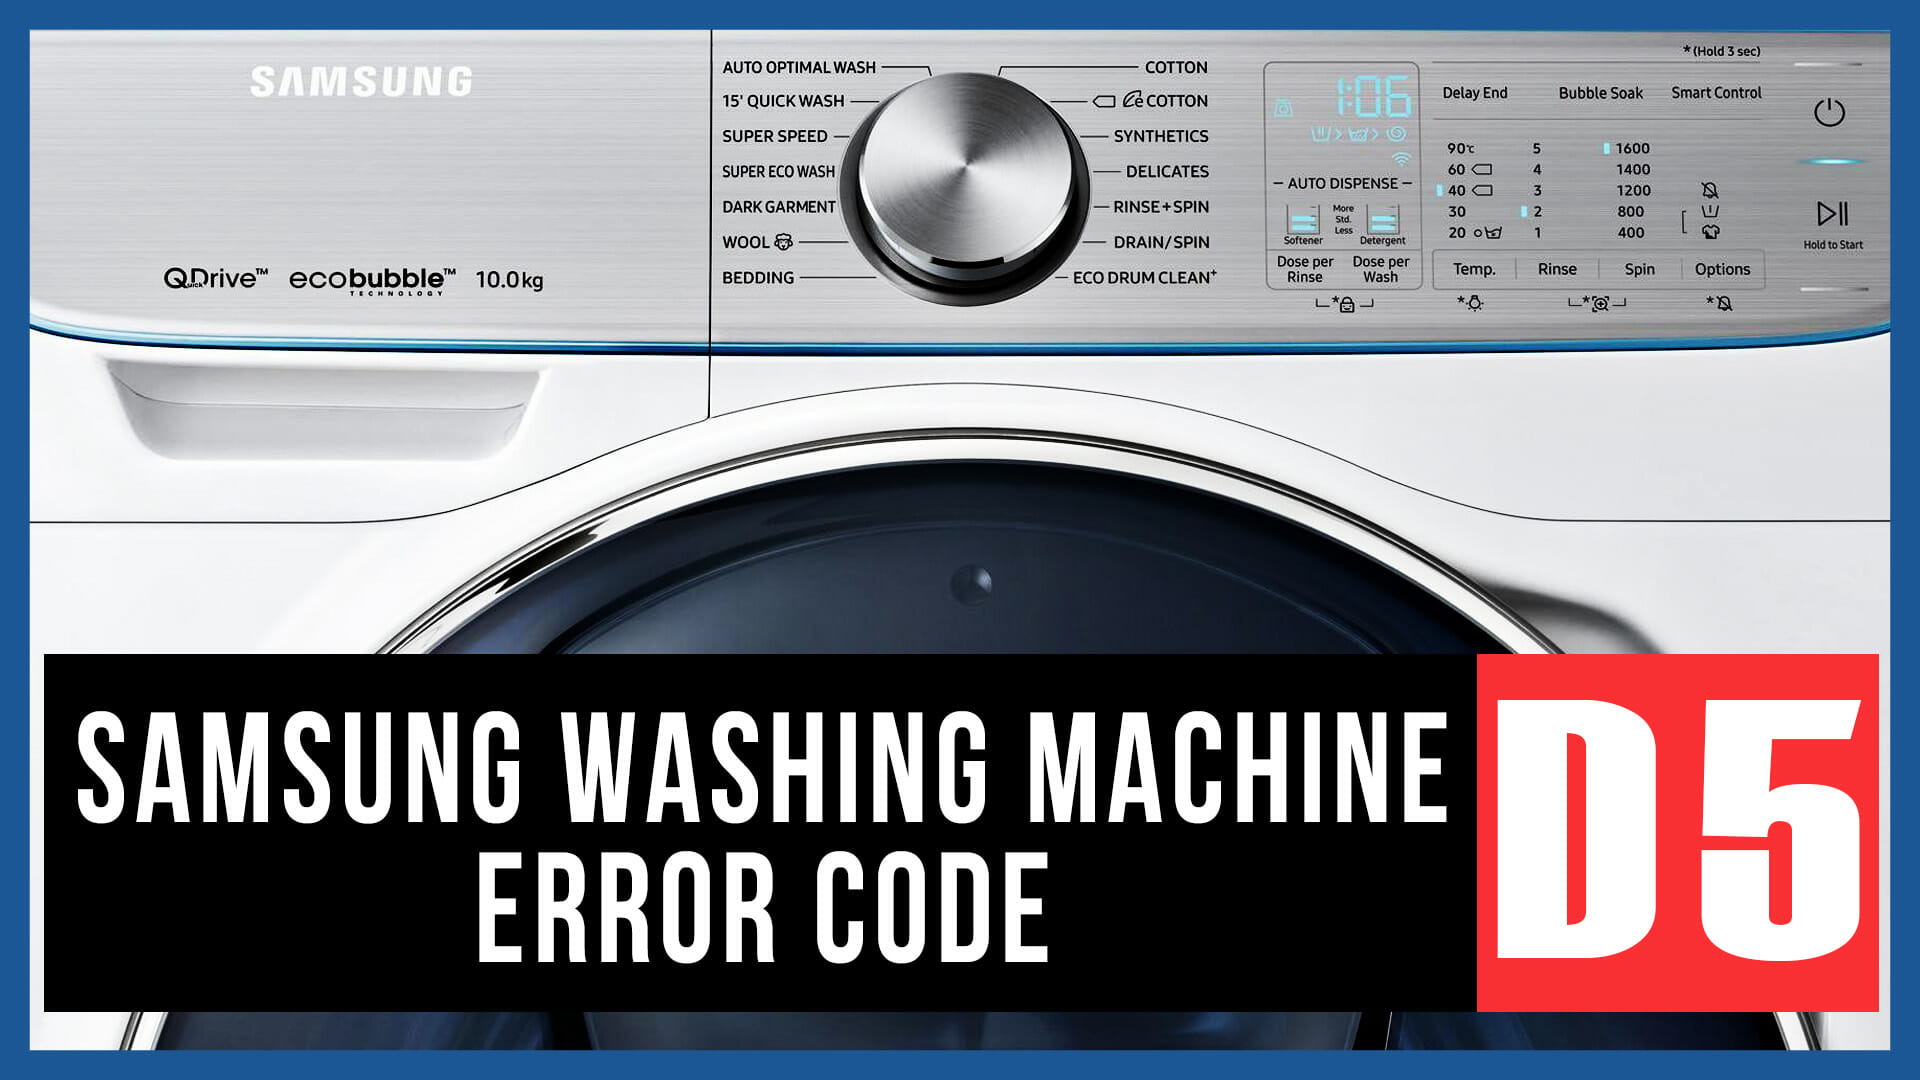 Samsung washing machine error code D5